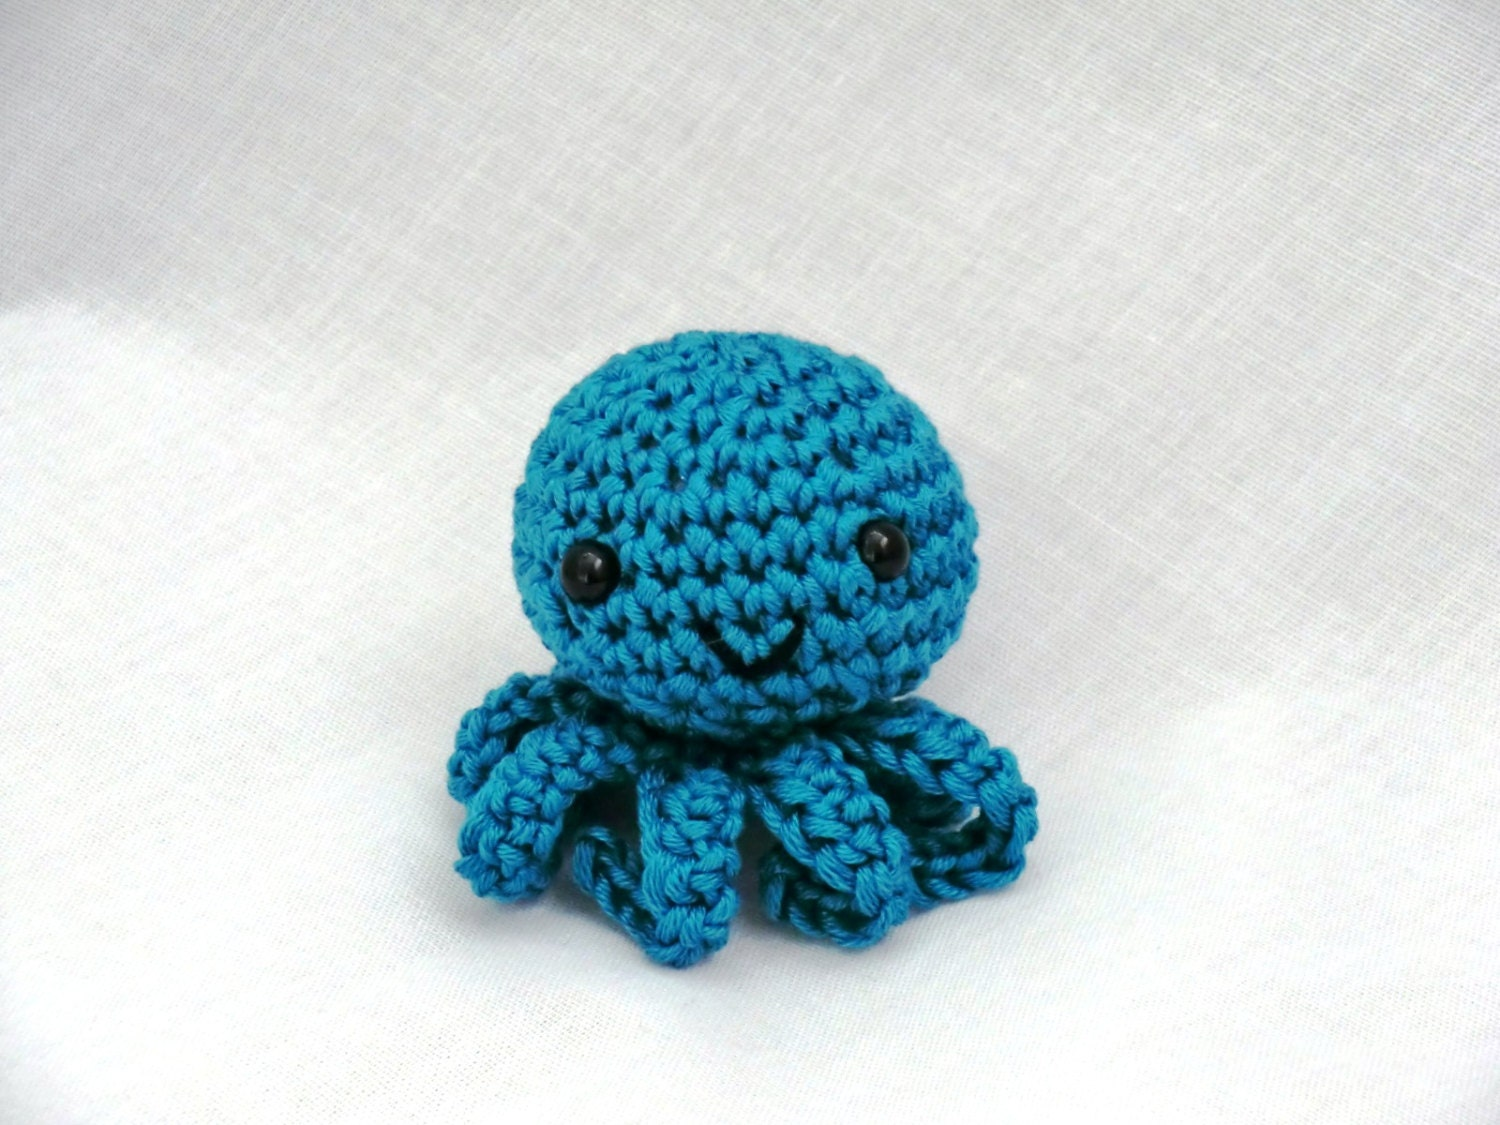 Mini Amigurumi Octopus : Mini amigurumi octopus PDF crochet pattern